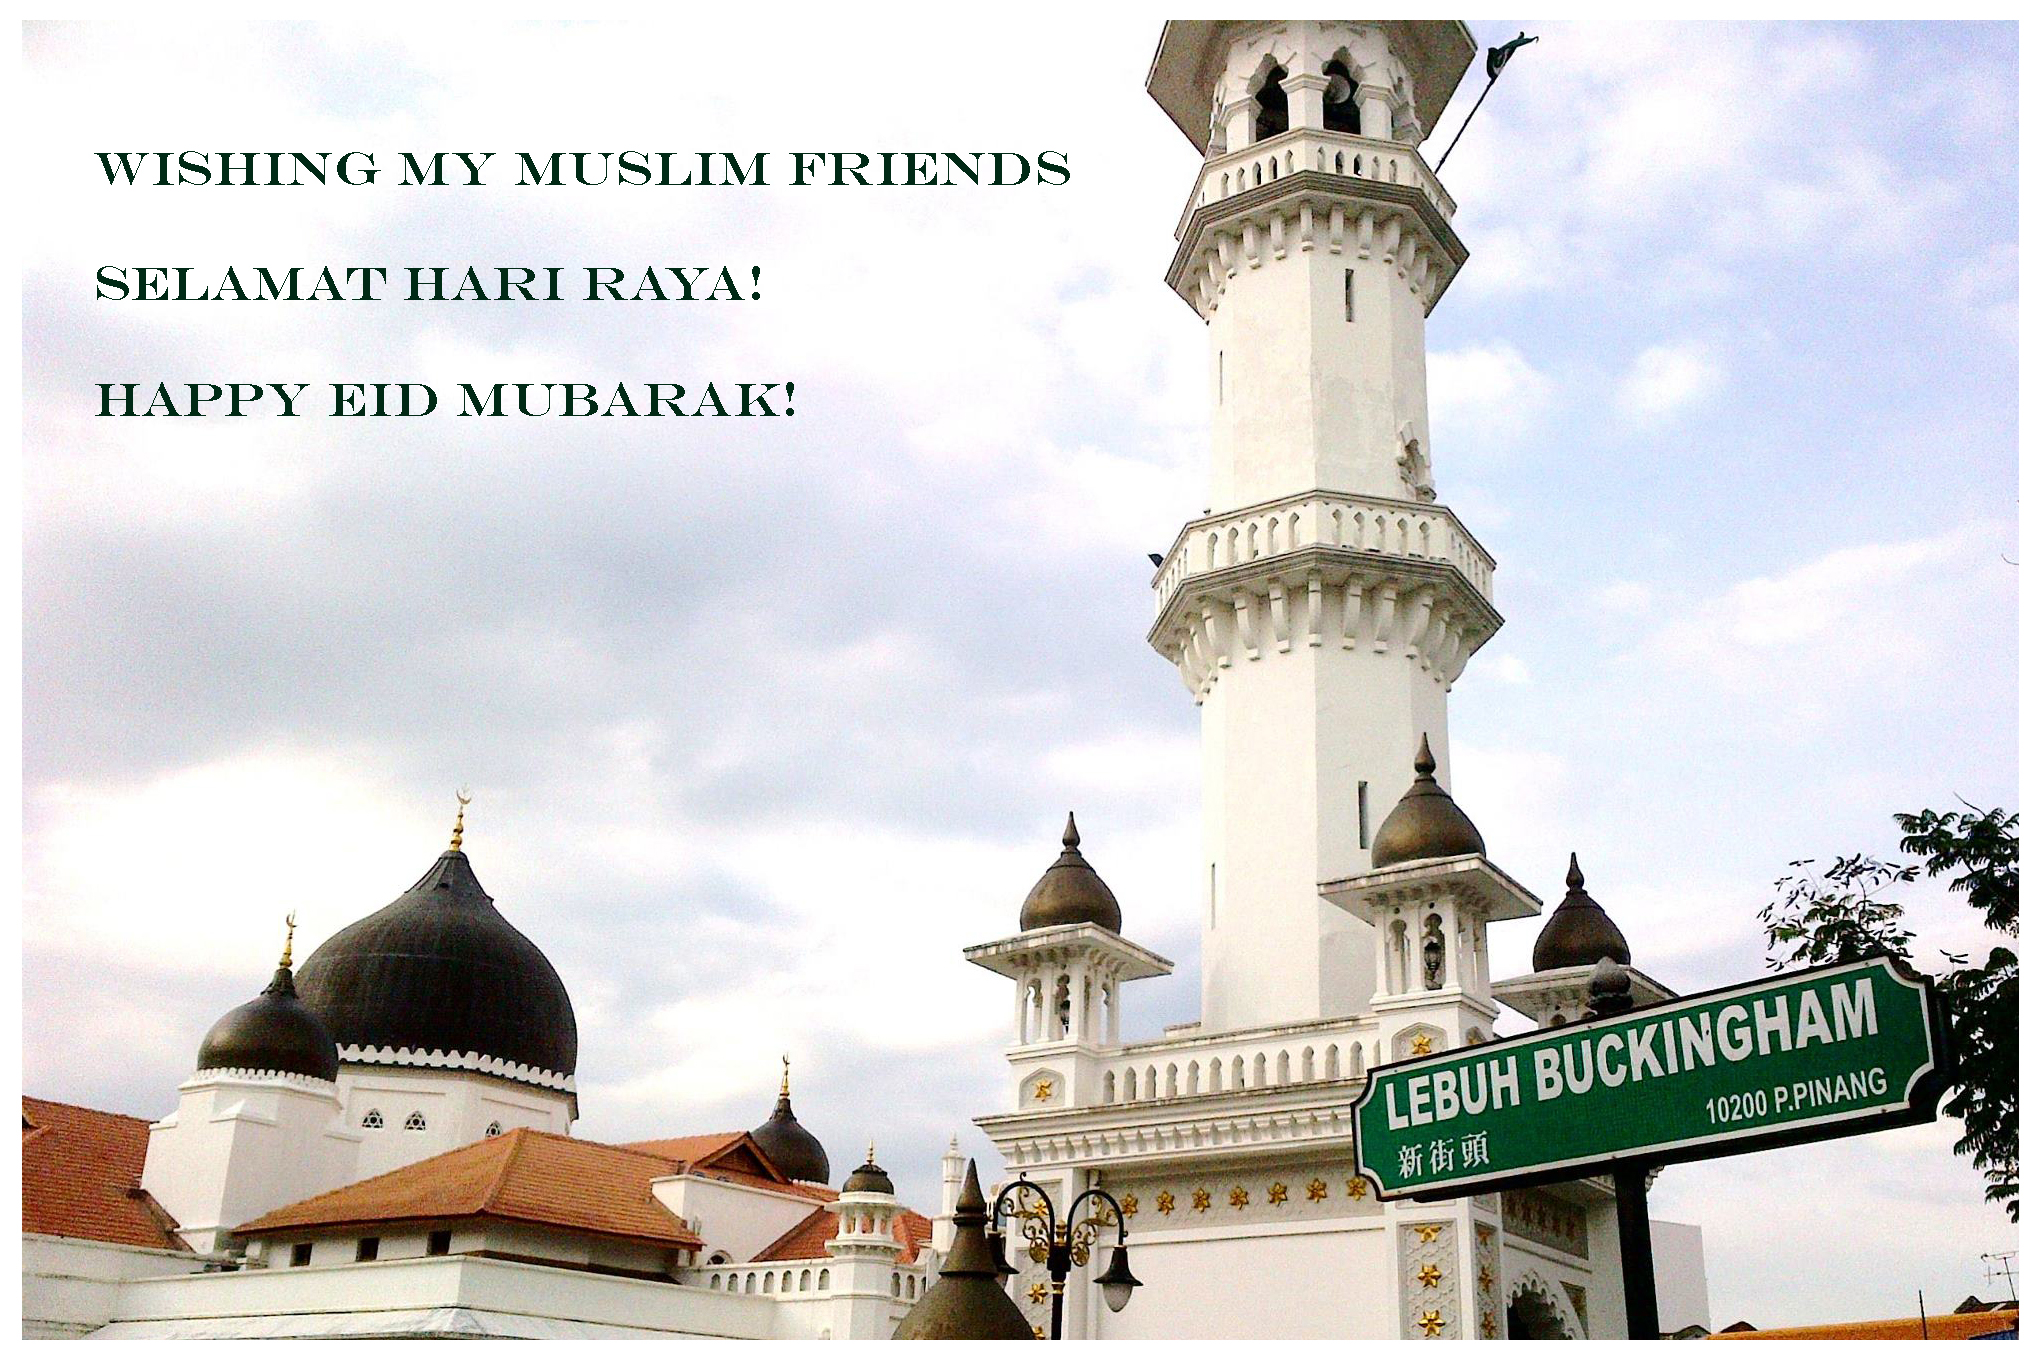 Wishing My Muslim Friends And Family Selamat Hari Raya And Happy Eid